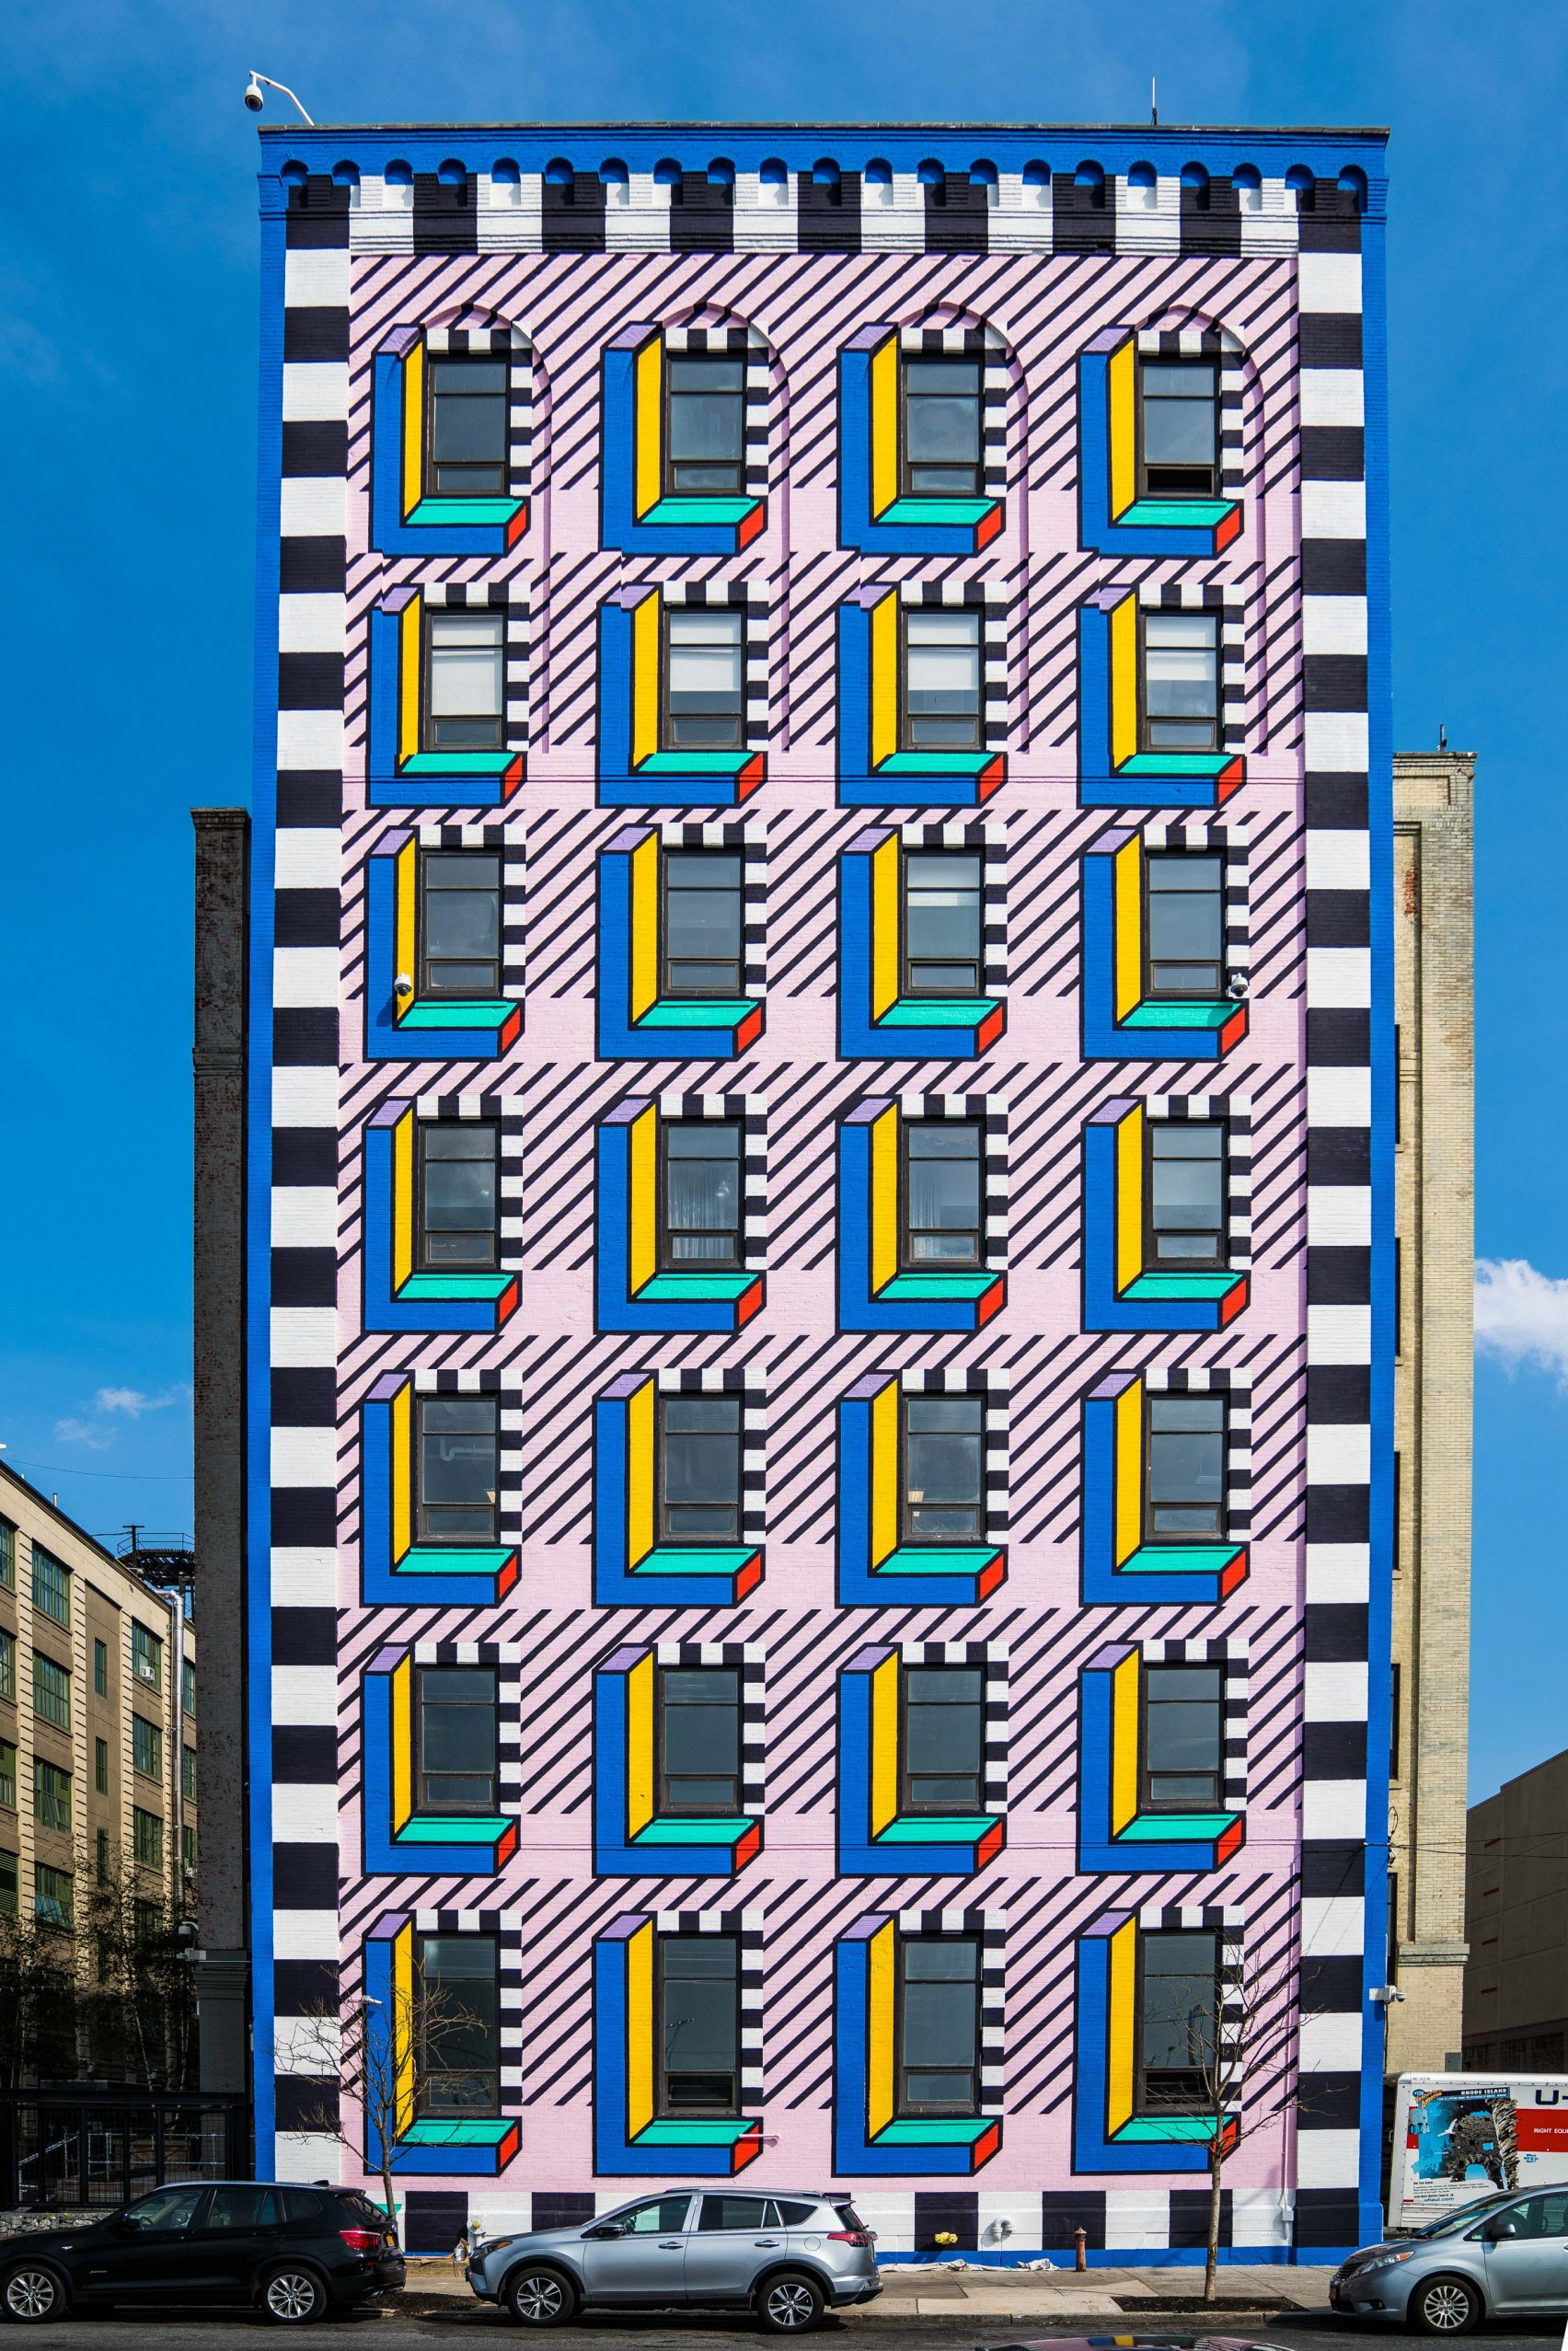 industry-city-camille-walala-wanteddesign-01